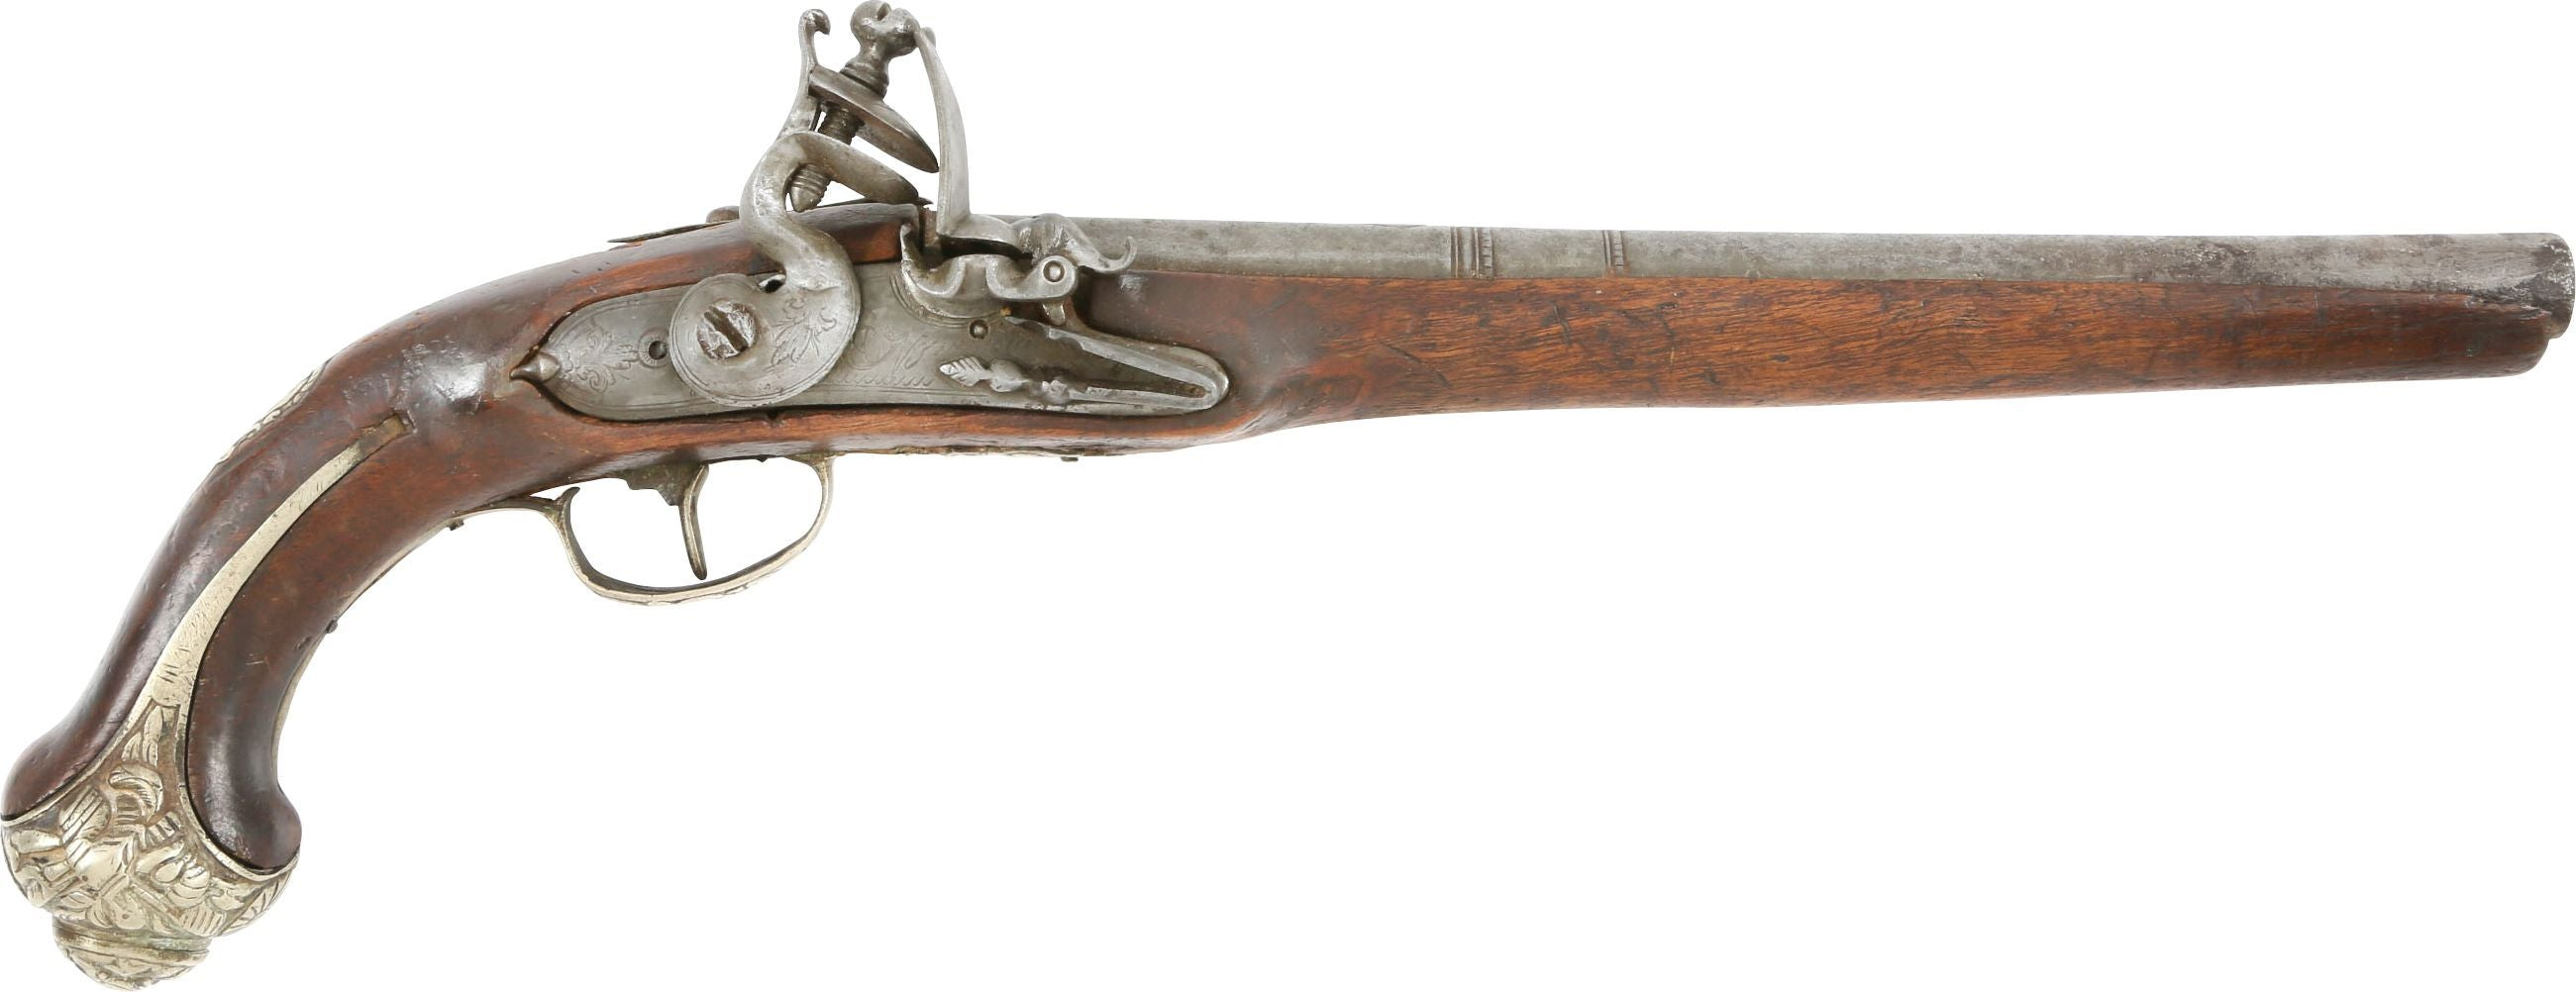 OTTOMAN TURKISH PISTOL IN THE EUROPEAN TASTE, LATE 18TH CENTURY